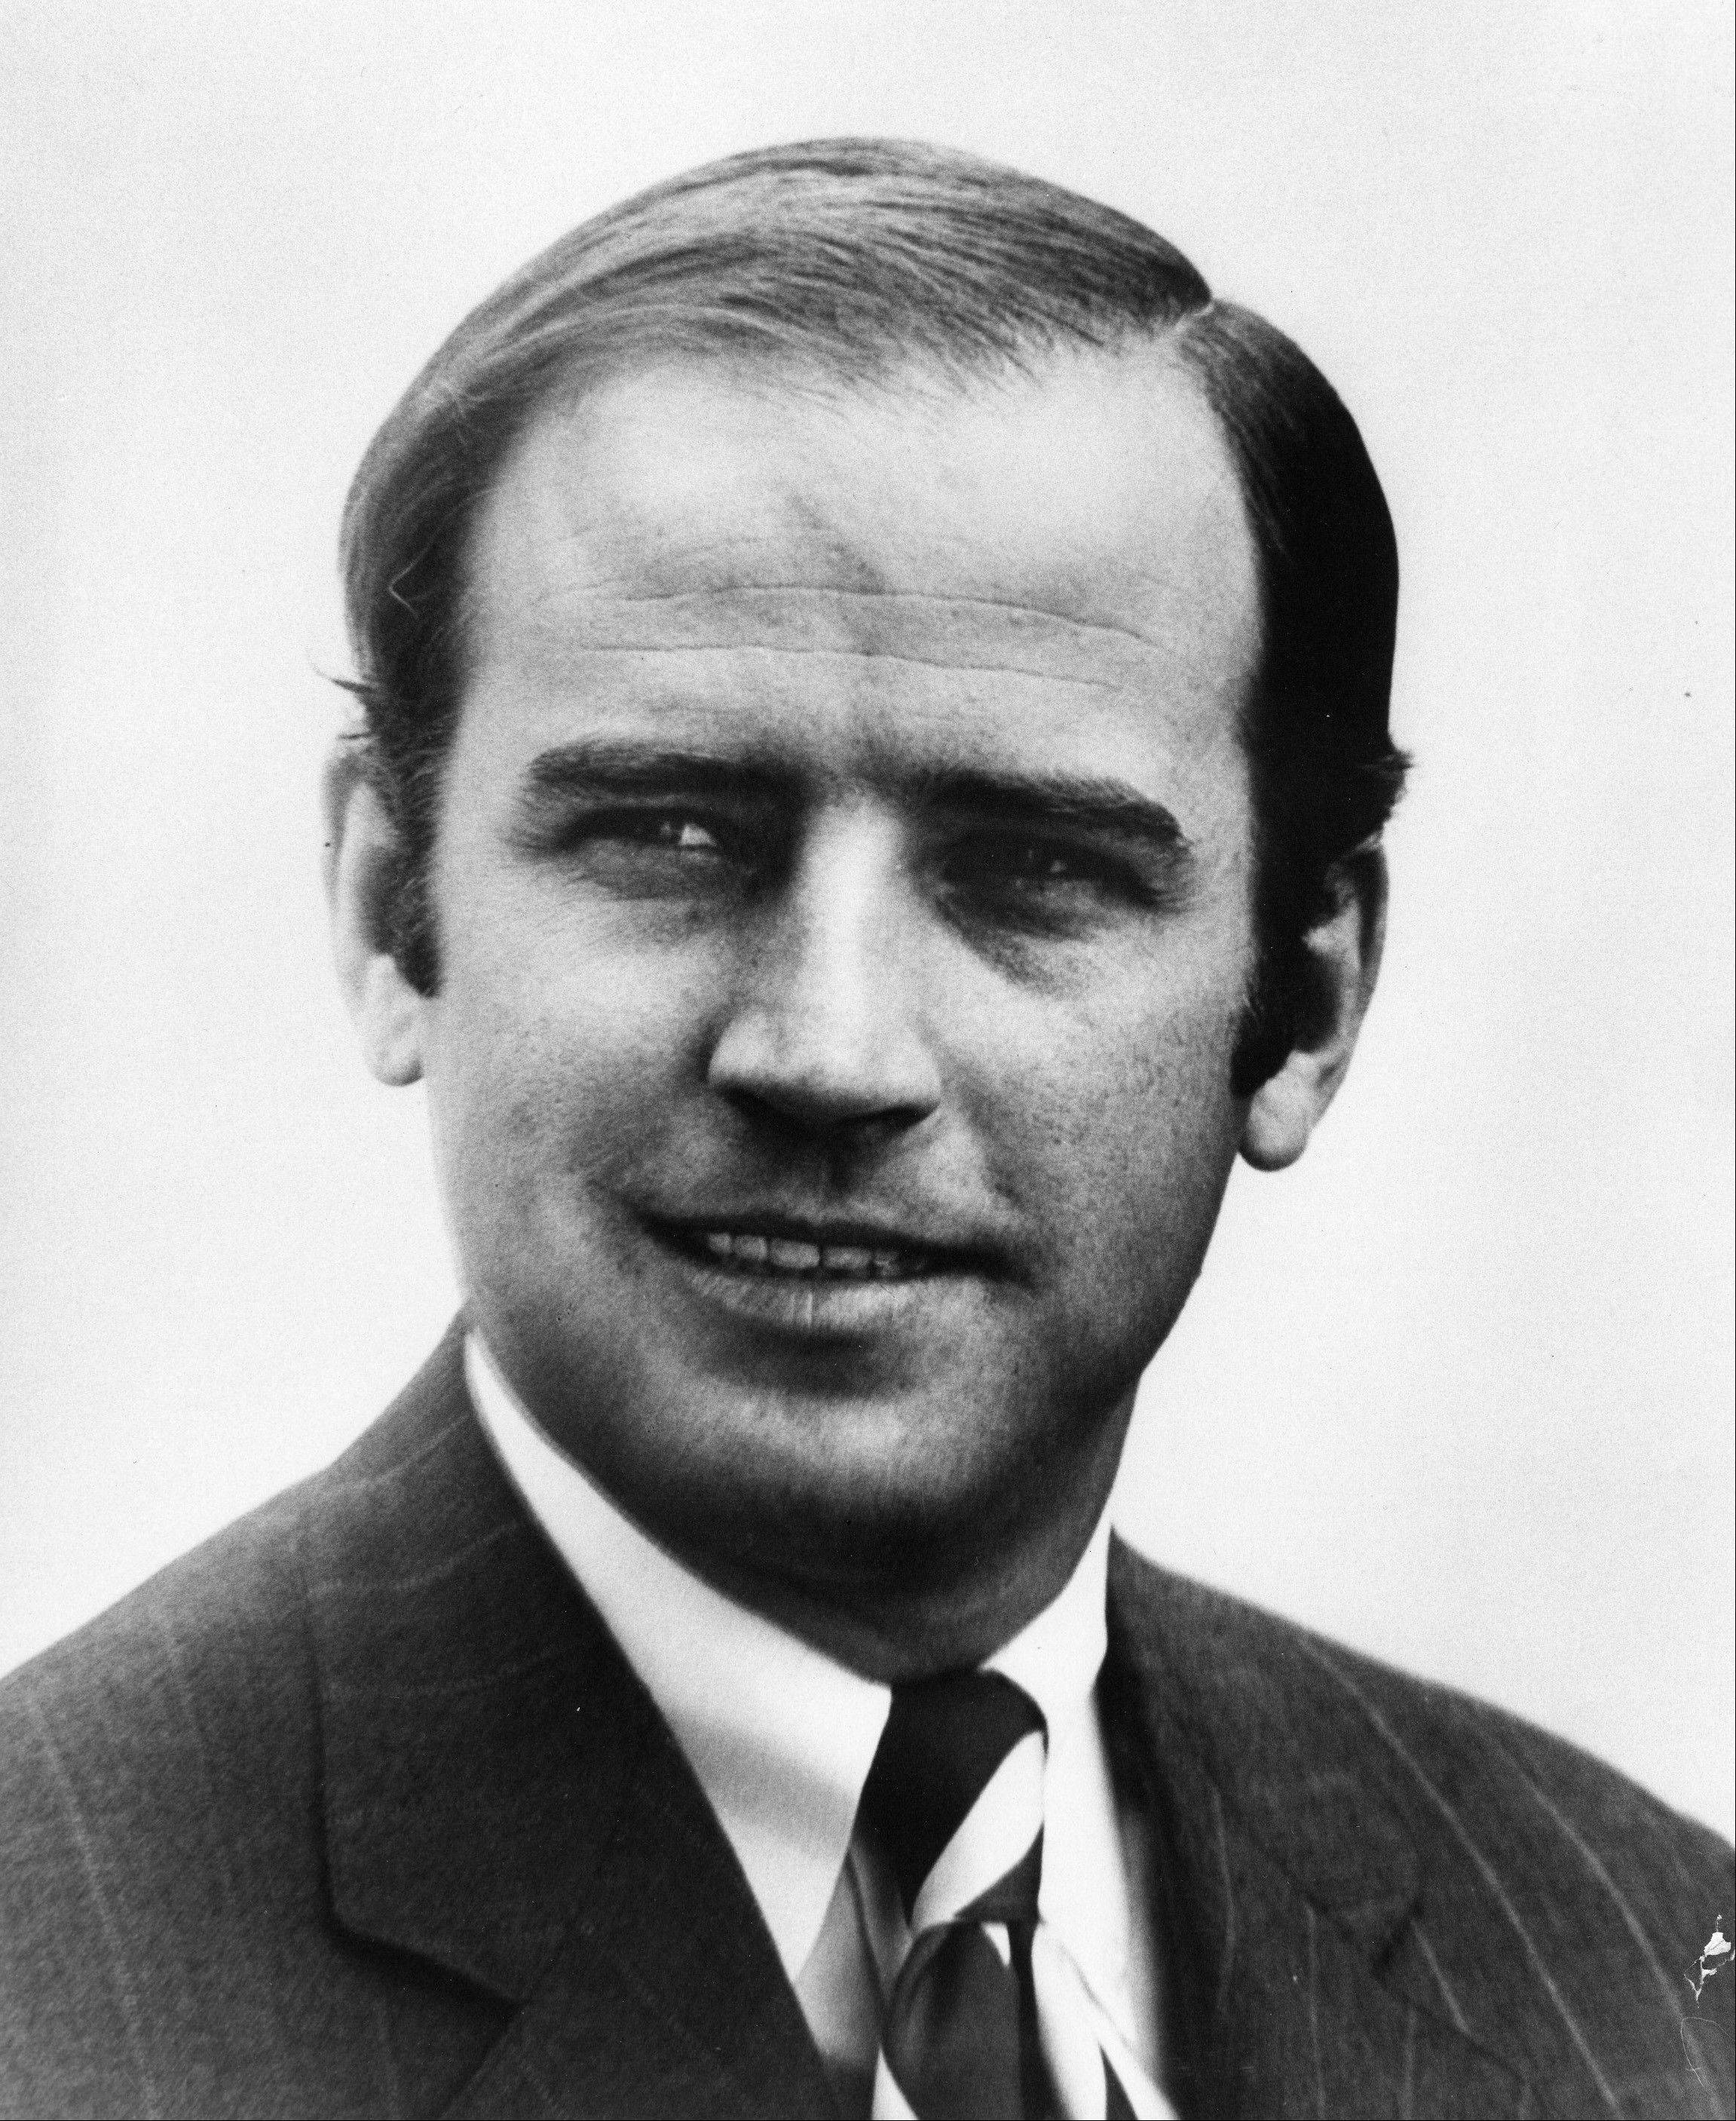 In this photo provided by Sen. Joe Biden's office, then- Sen. Joe Biden, D-Del., is seen in his official Senate portrait in the mid 1970's in Washington. In May, after Joe Biden tripped up his boss by voicing support for same-sex marriage while the president remained on the fence, there was speculation about whether the remarks were spontaneous or deliberate. But to those who know Biden, there was no doubt. He was just speaking his mind.